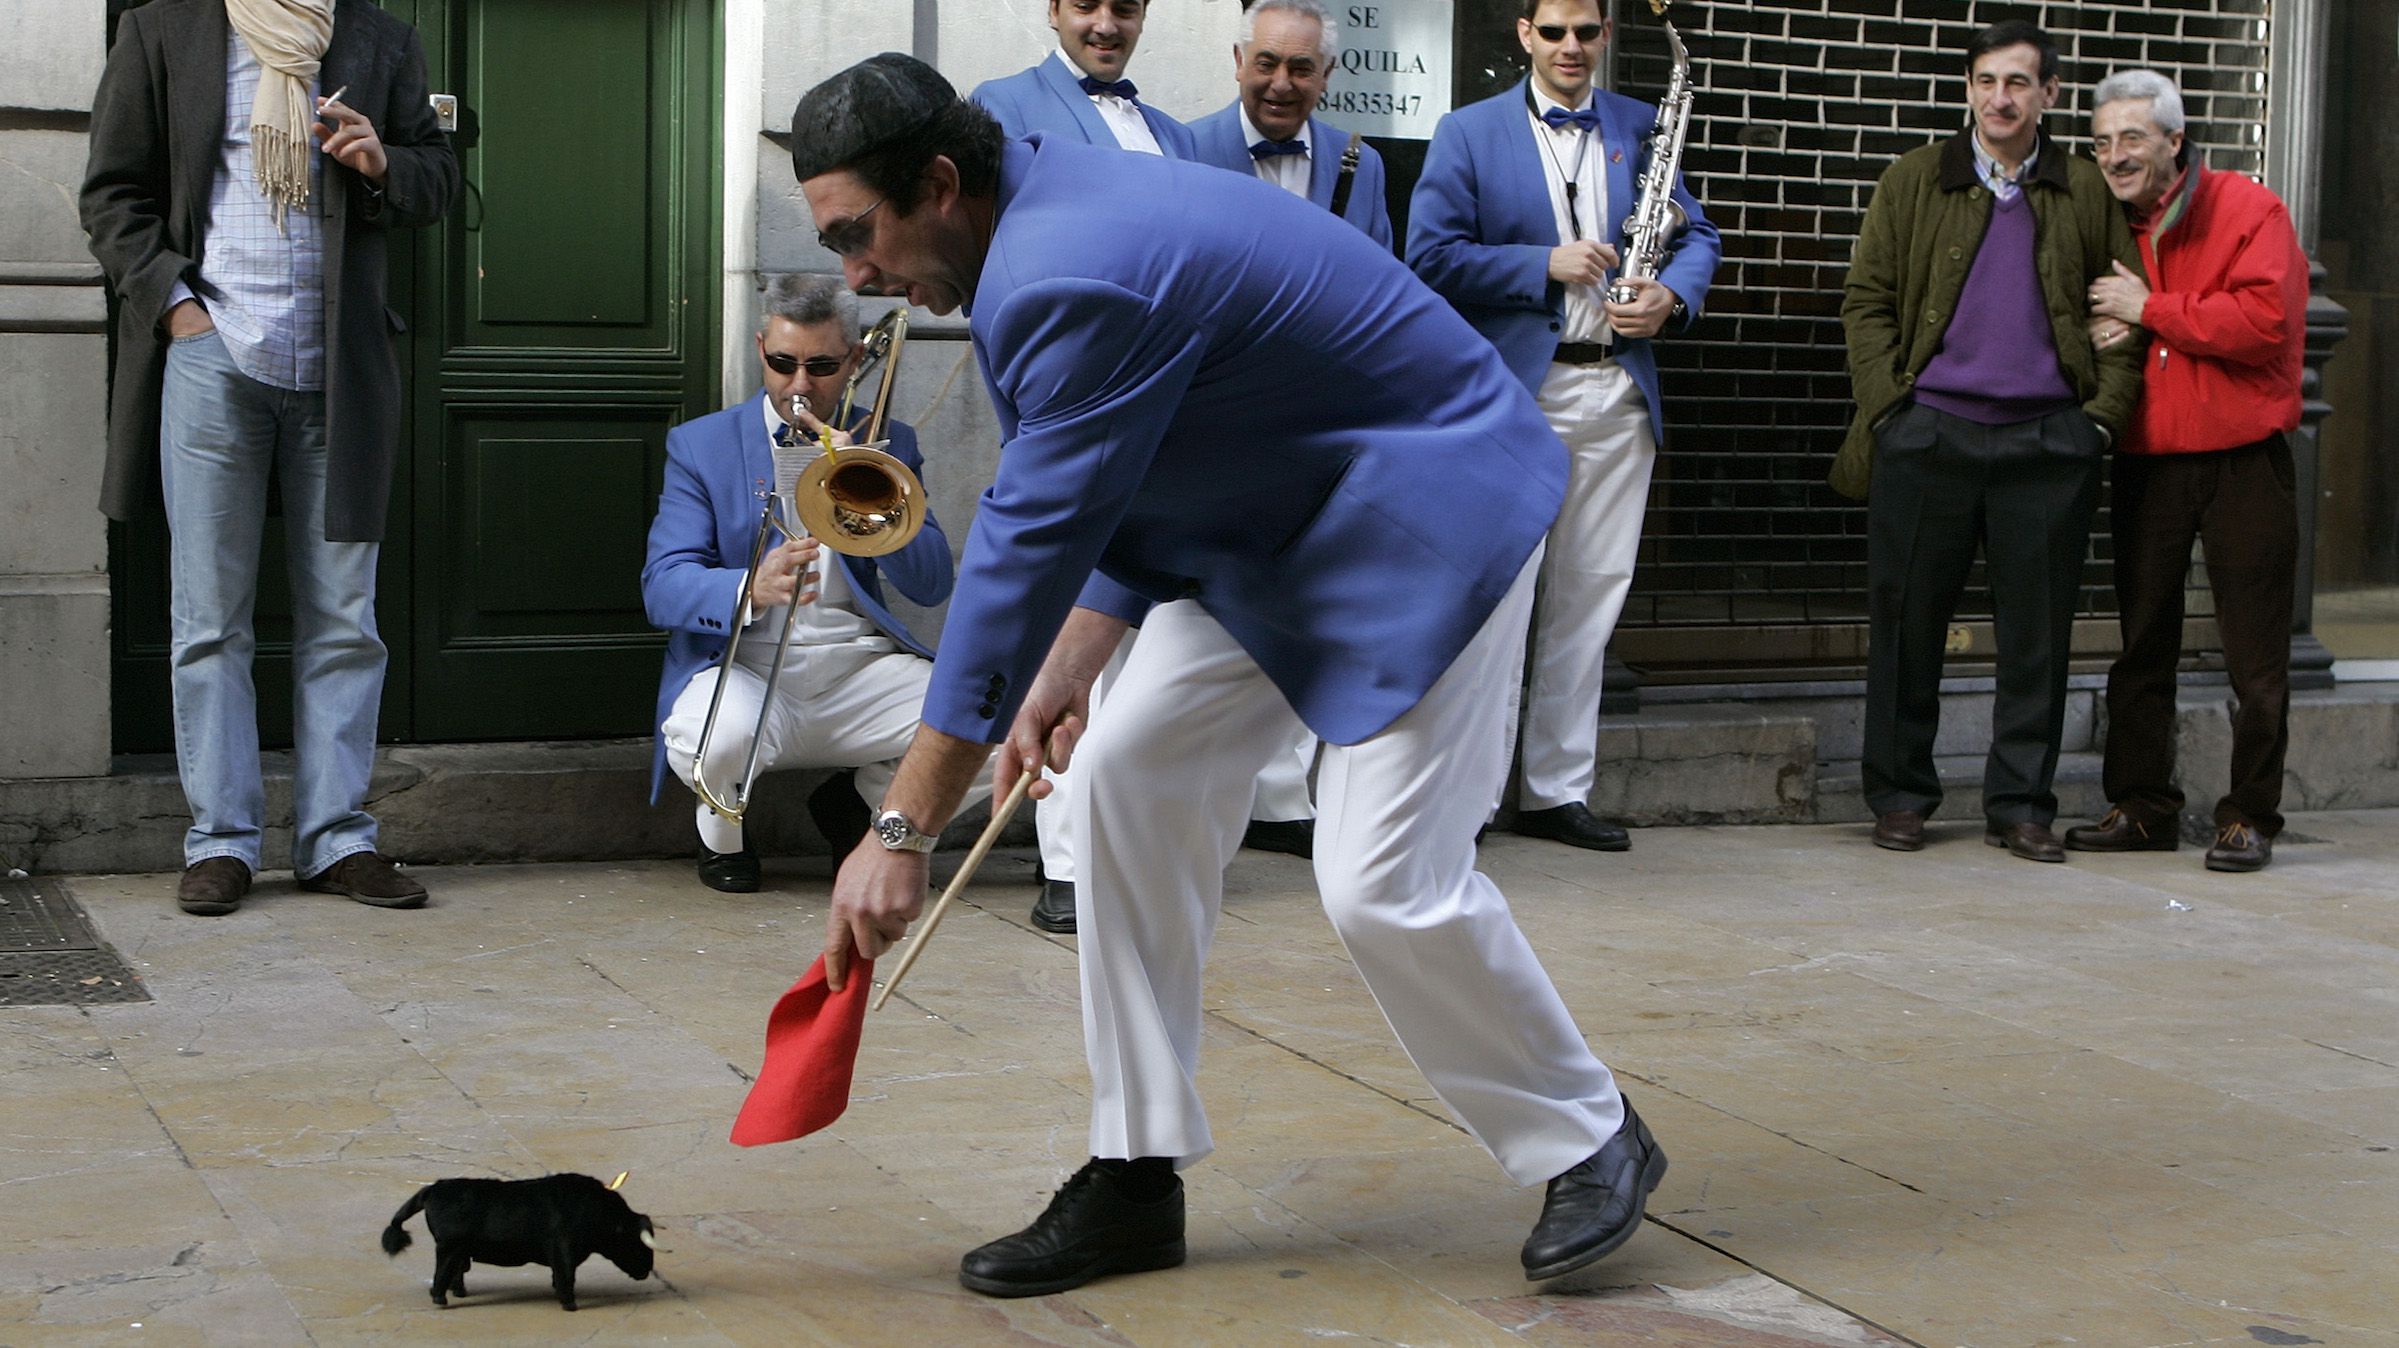 """A member of a carnival """"comparsa"""", also known as carnival musical group, plays with a toy bull in a street of the northern Spanish town of Aviles February 5, 2008. REUTERS/Eloy Alonso (SPAIN) - RTR1WPL1"""